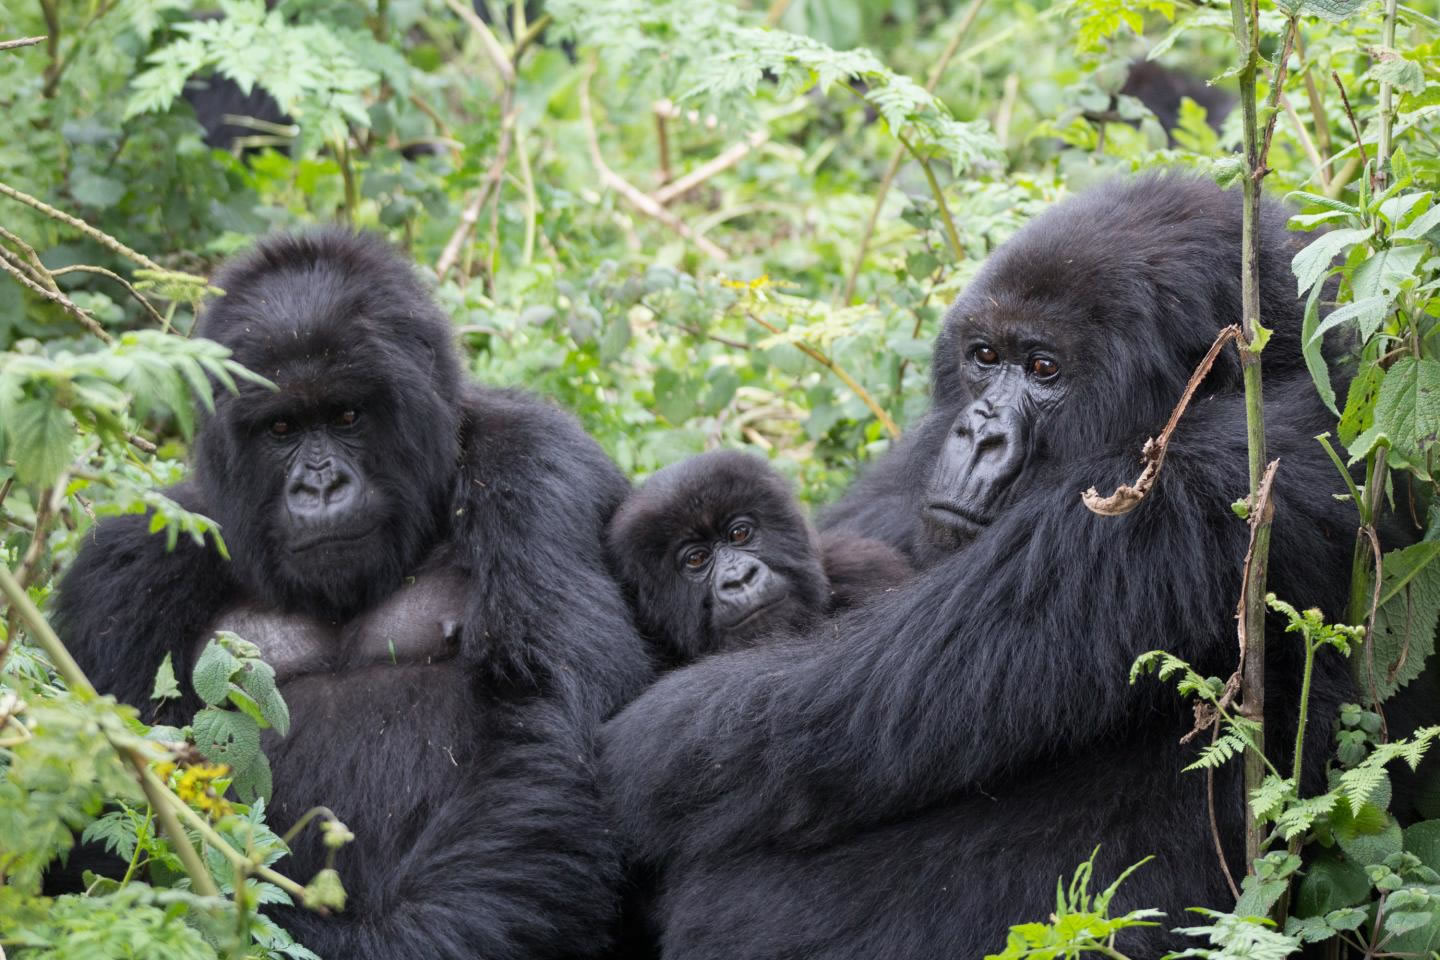 Gorillas in Volcanoes National Park